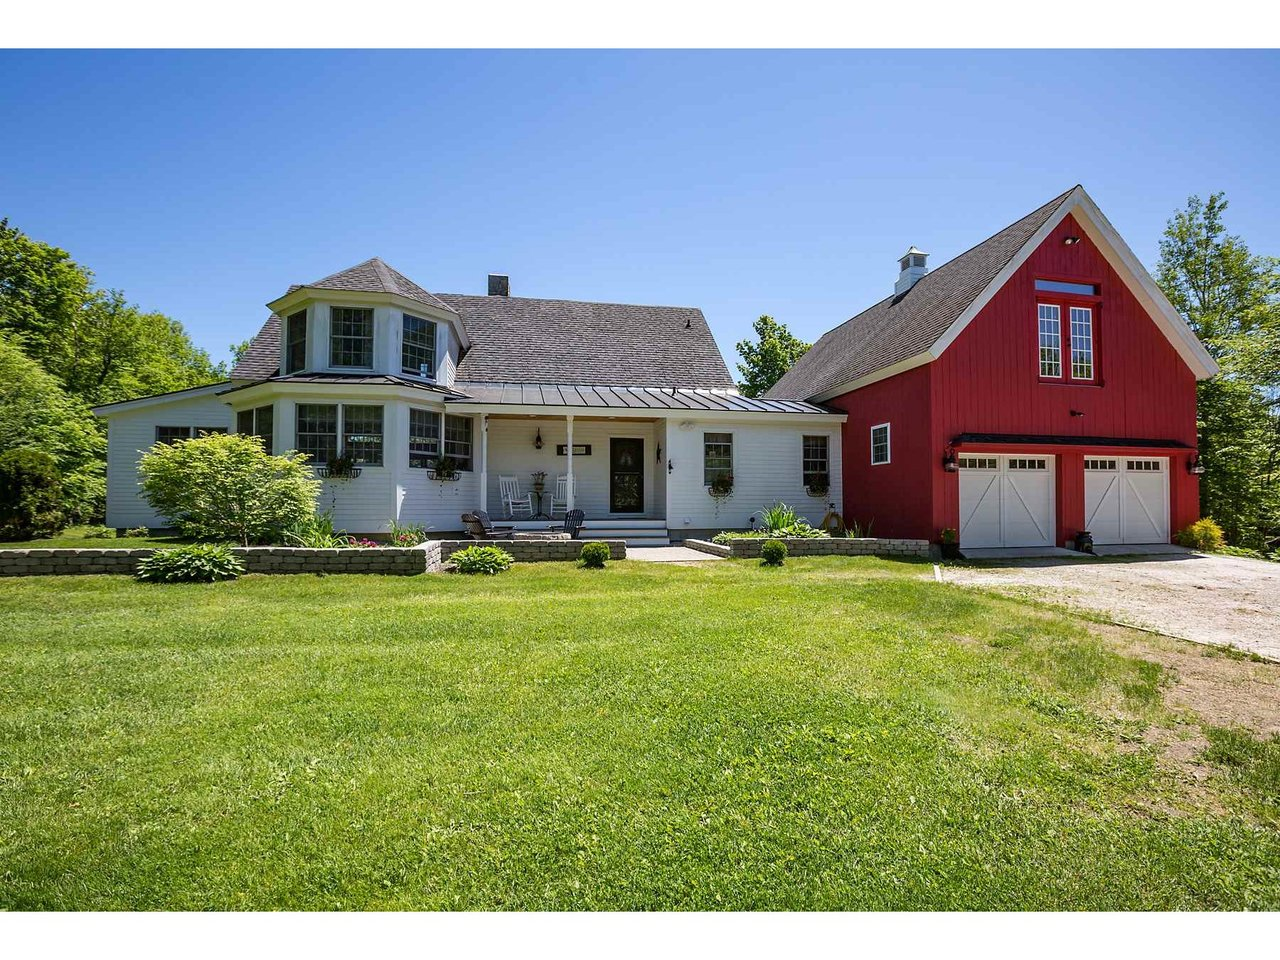 3703 Popple Dungeon Rd, Chester, VT 05143 - Home For Sale